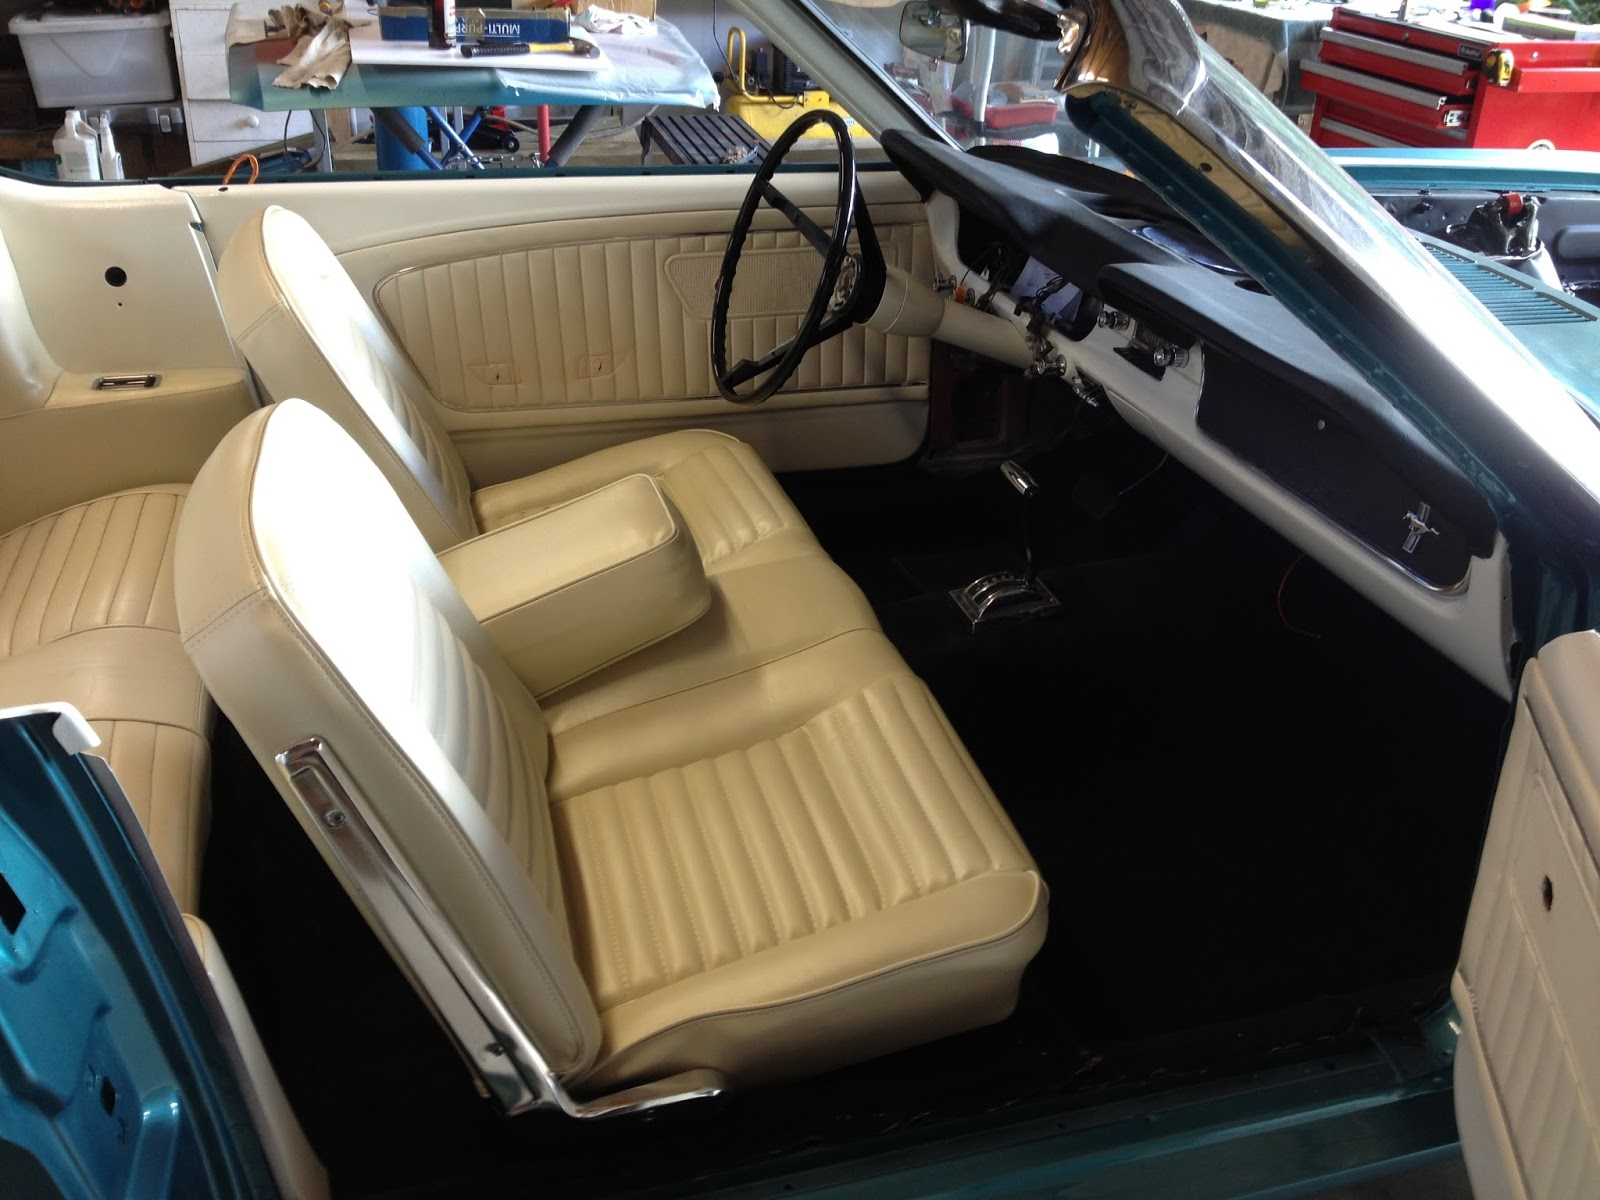 1965 convertible mustang restoration front bench seat fitted and sound proofing and carpets